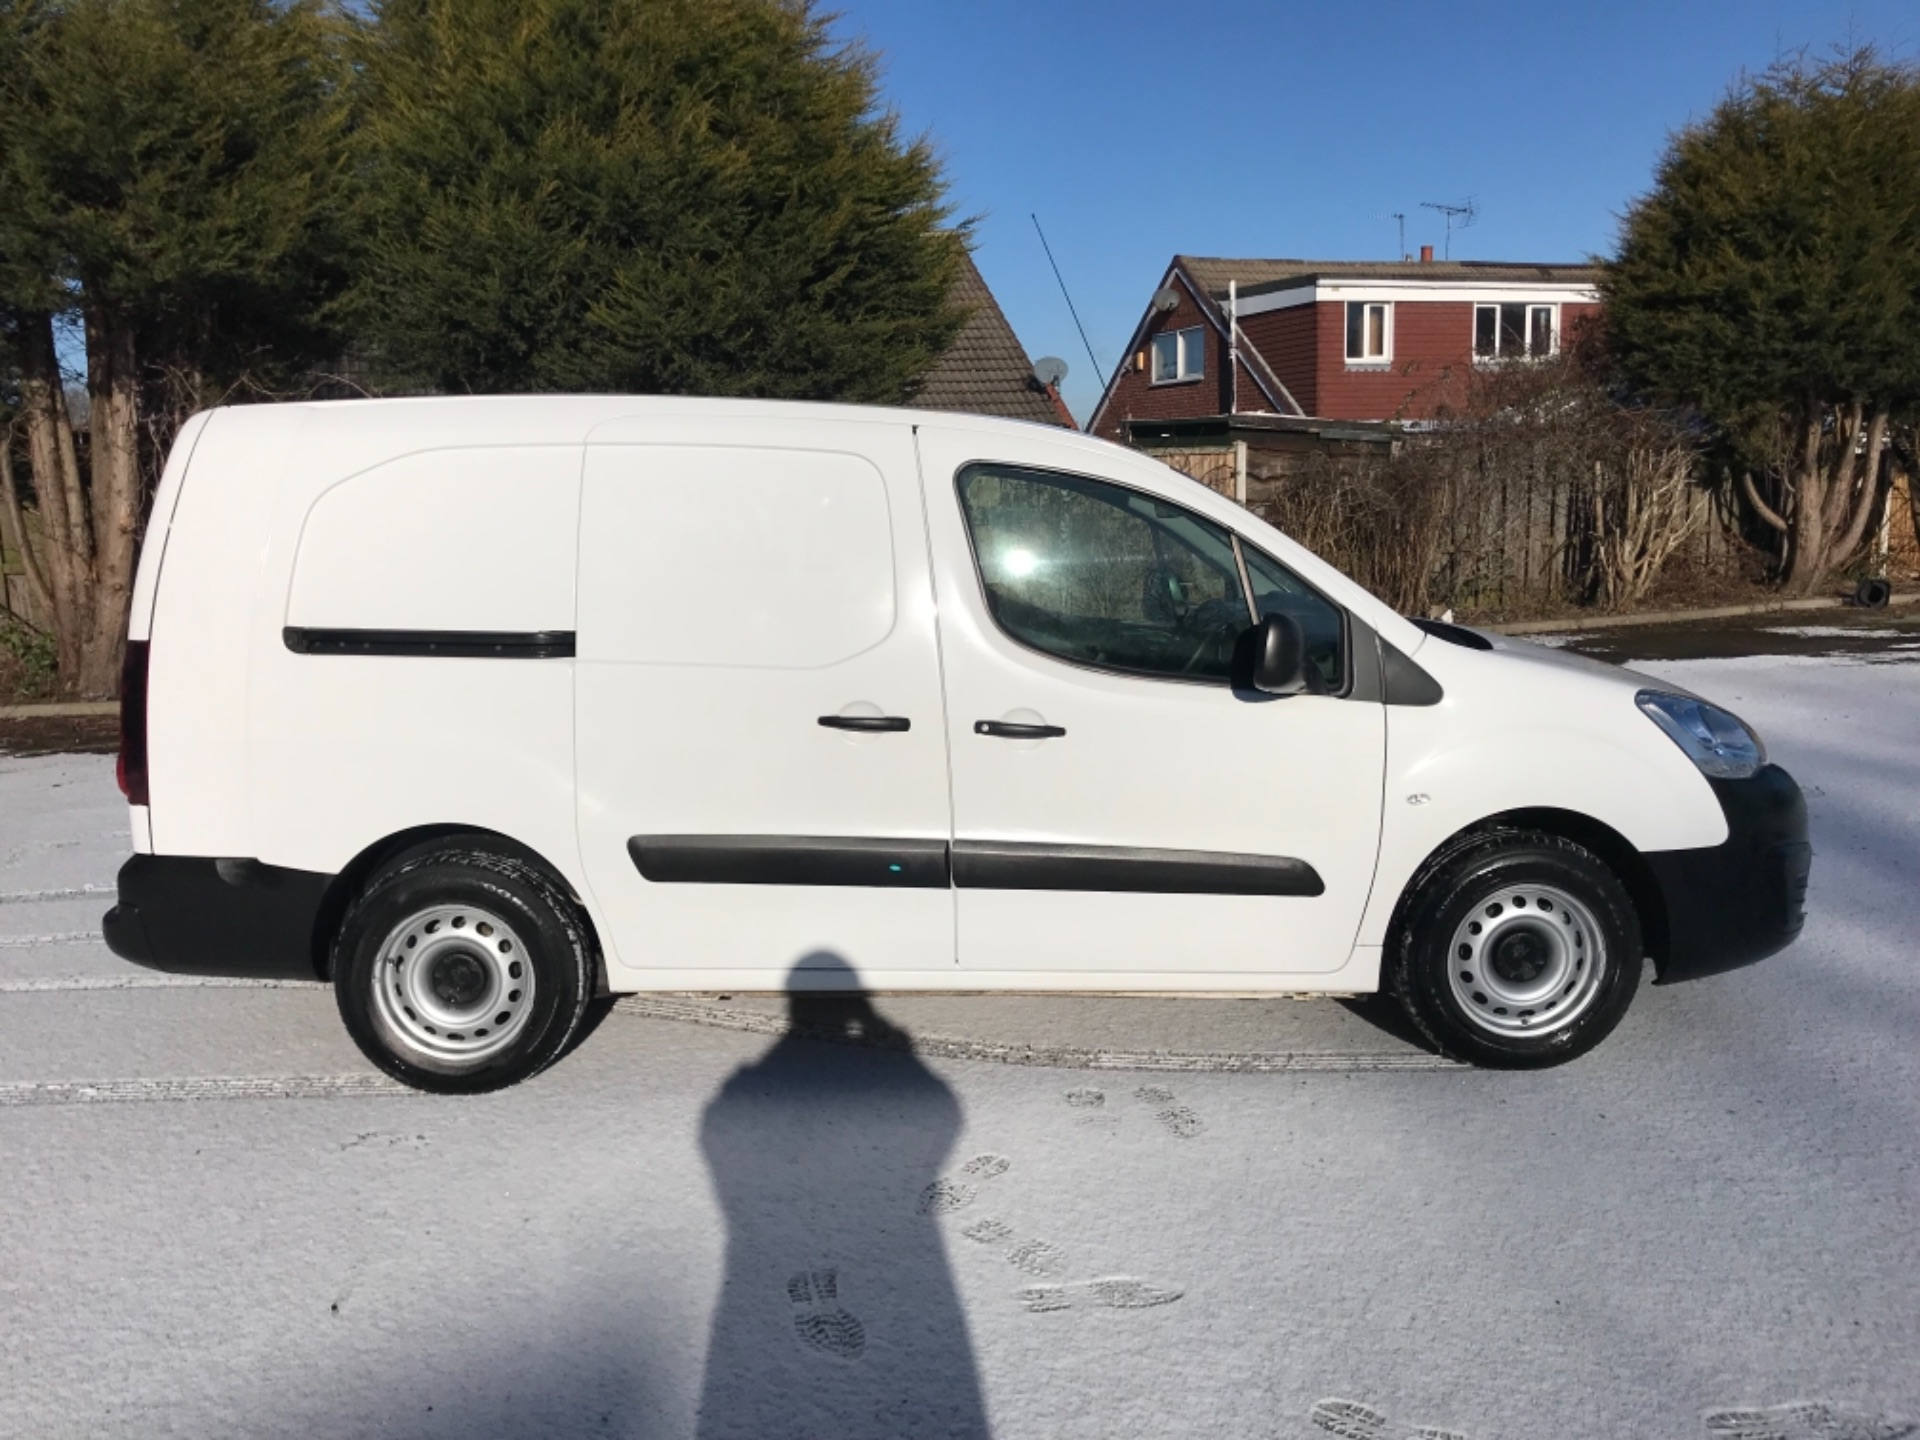 2017 Peugeot Partner L2 715 S 1.6 Bluehdi 100 Crew Van Euro 6  *70 MPH SPEED RESTRICTED (NV17NYM) Image 8